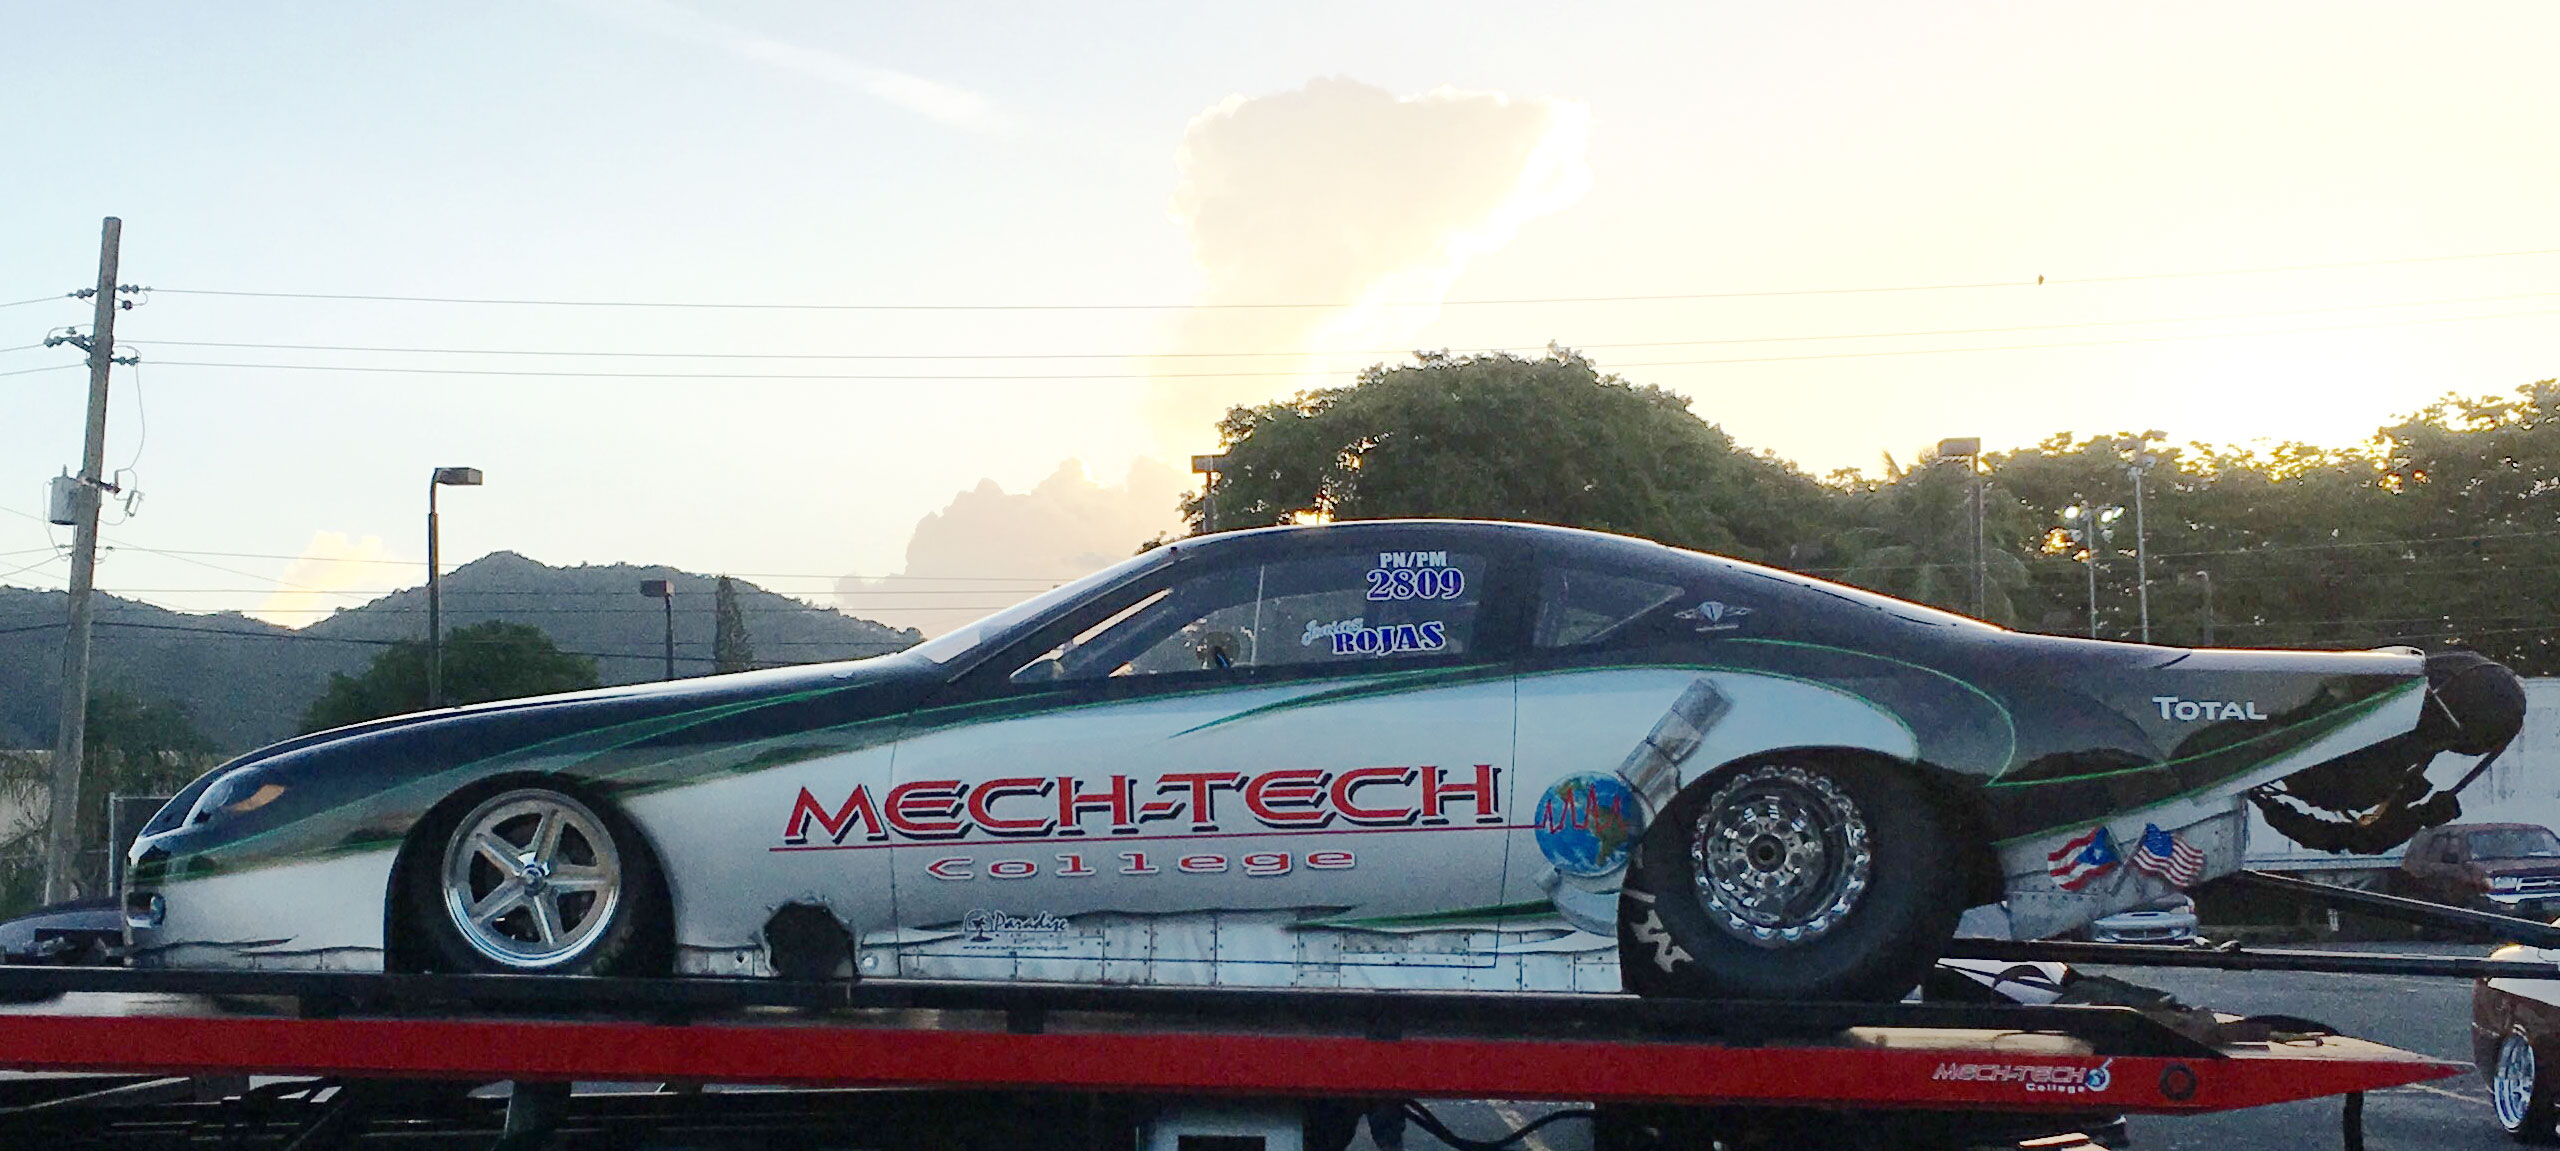 Mech-Tech Racing arranca con buenos números